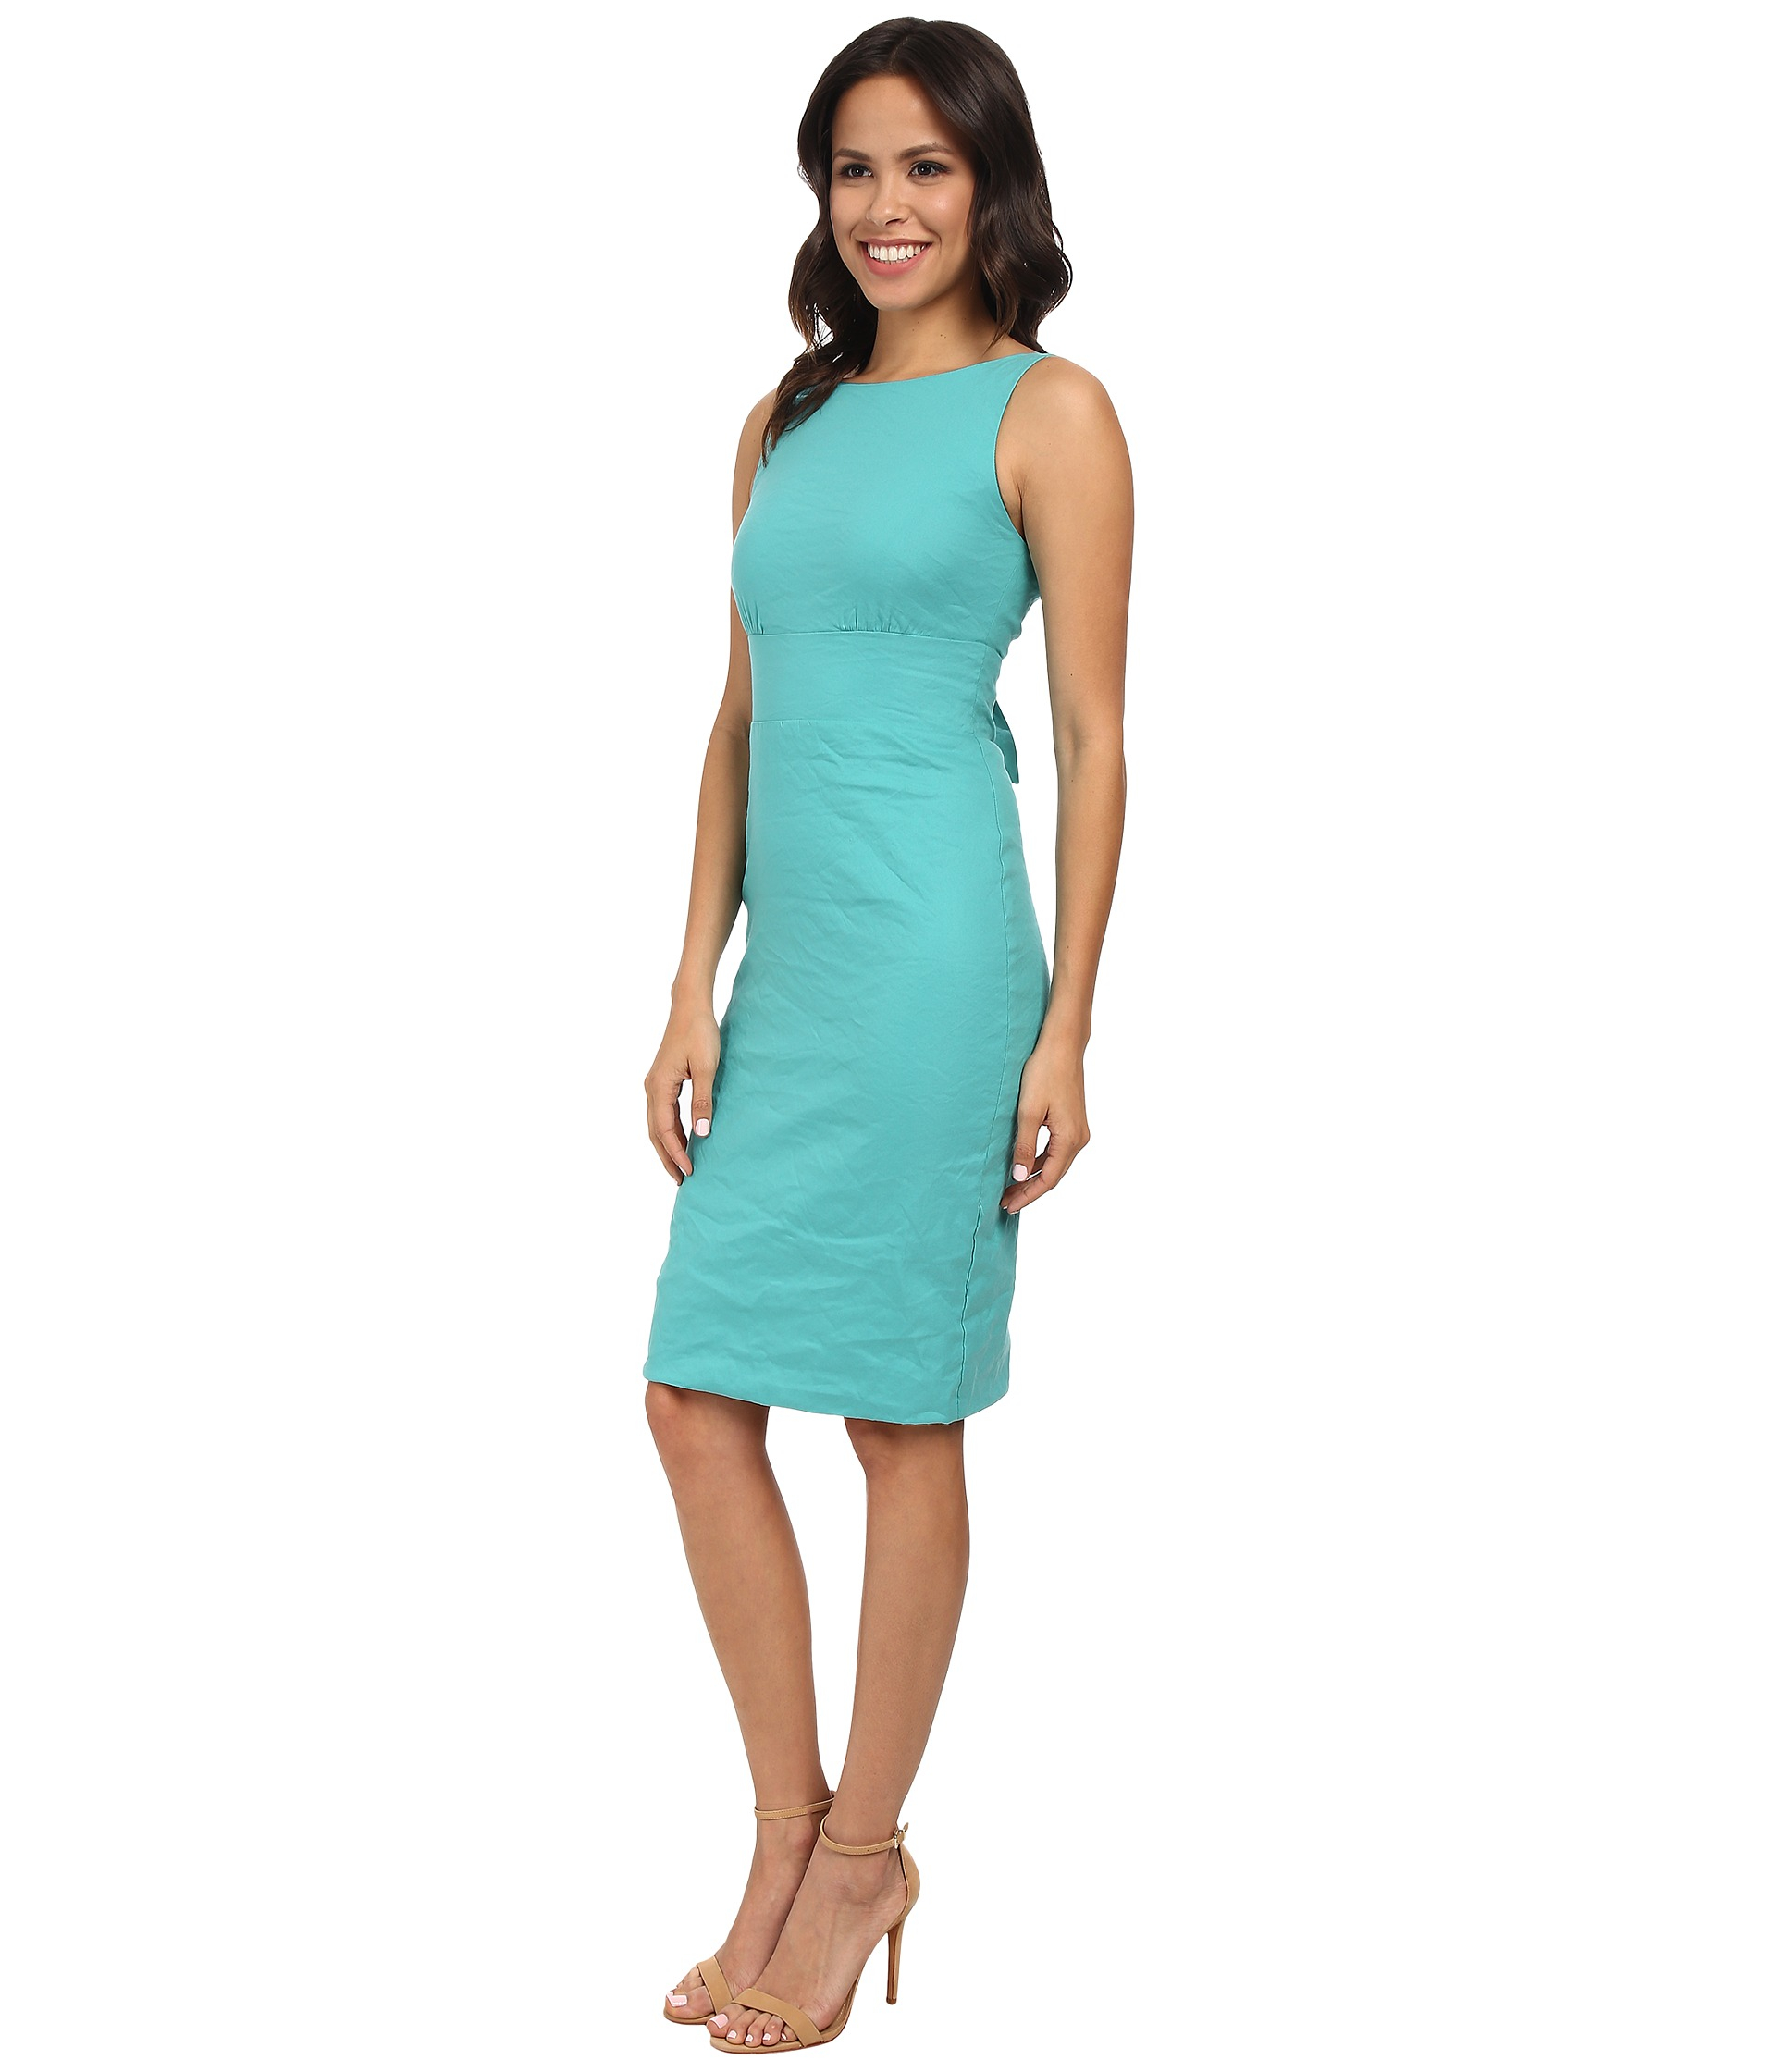 Lyst  Nicole Miller Tieback Garden Party Dress in Blue